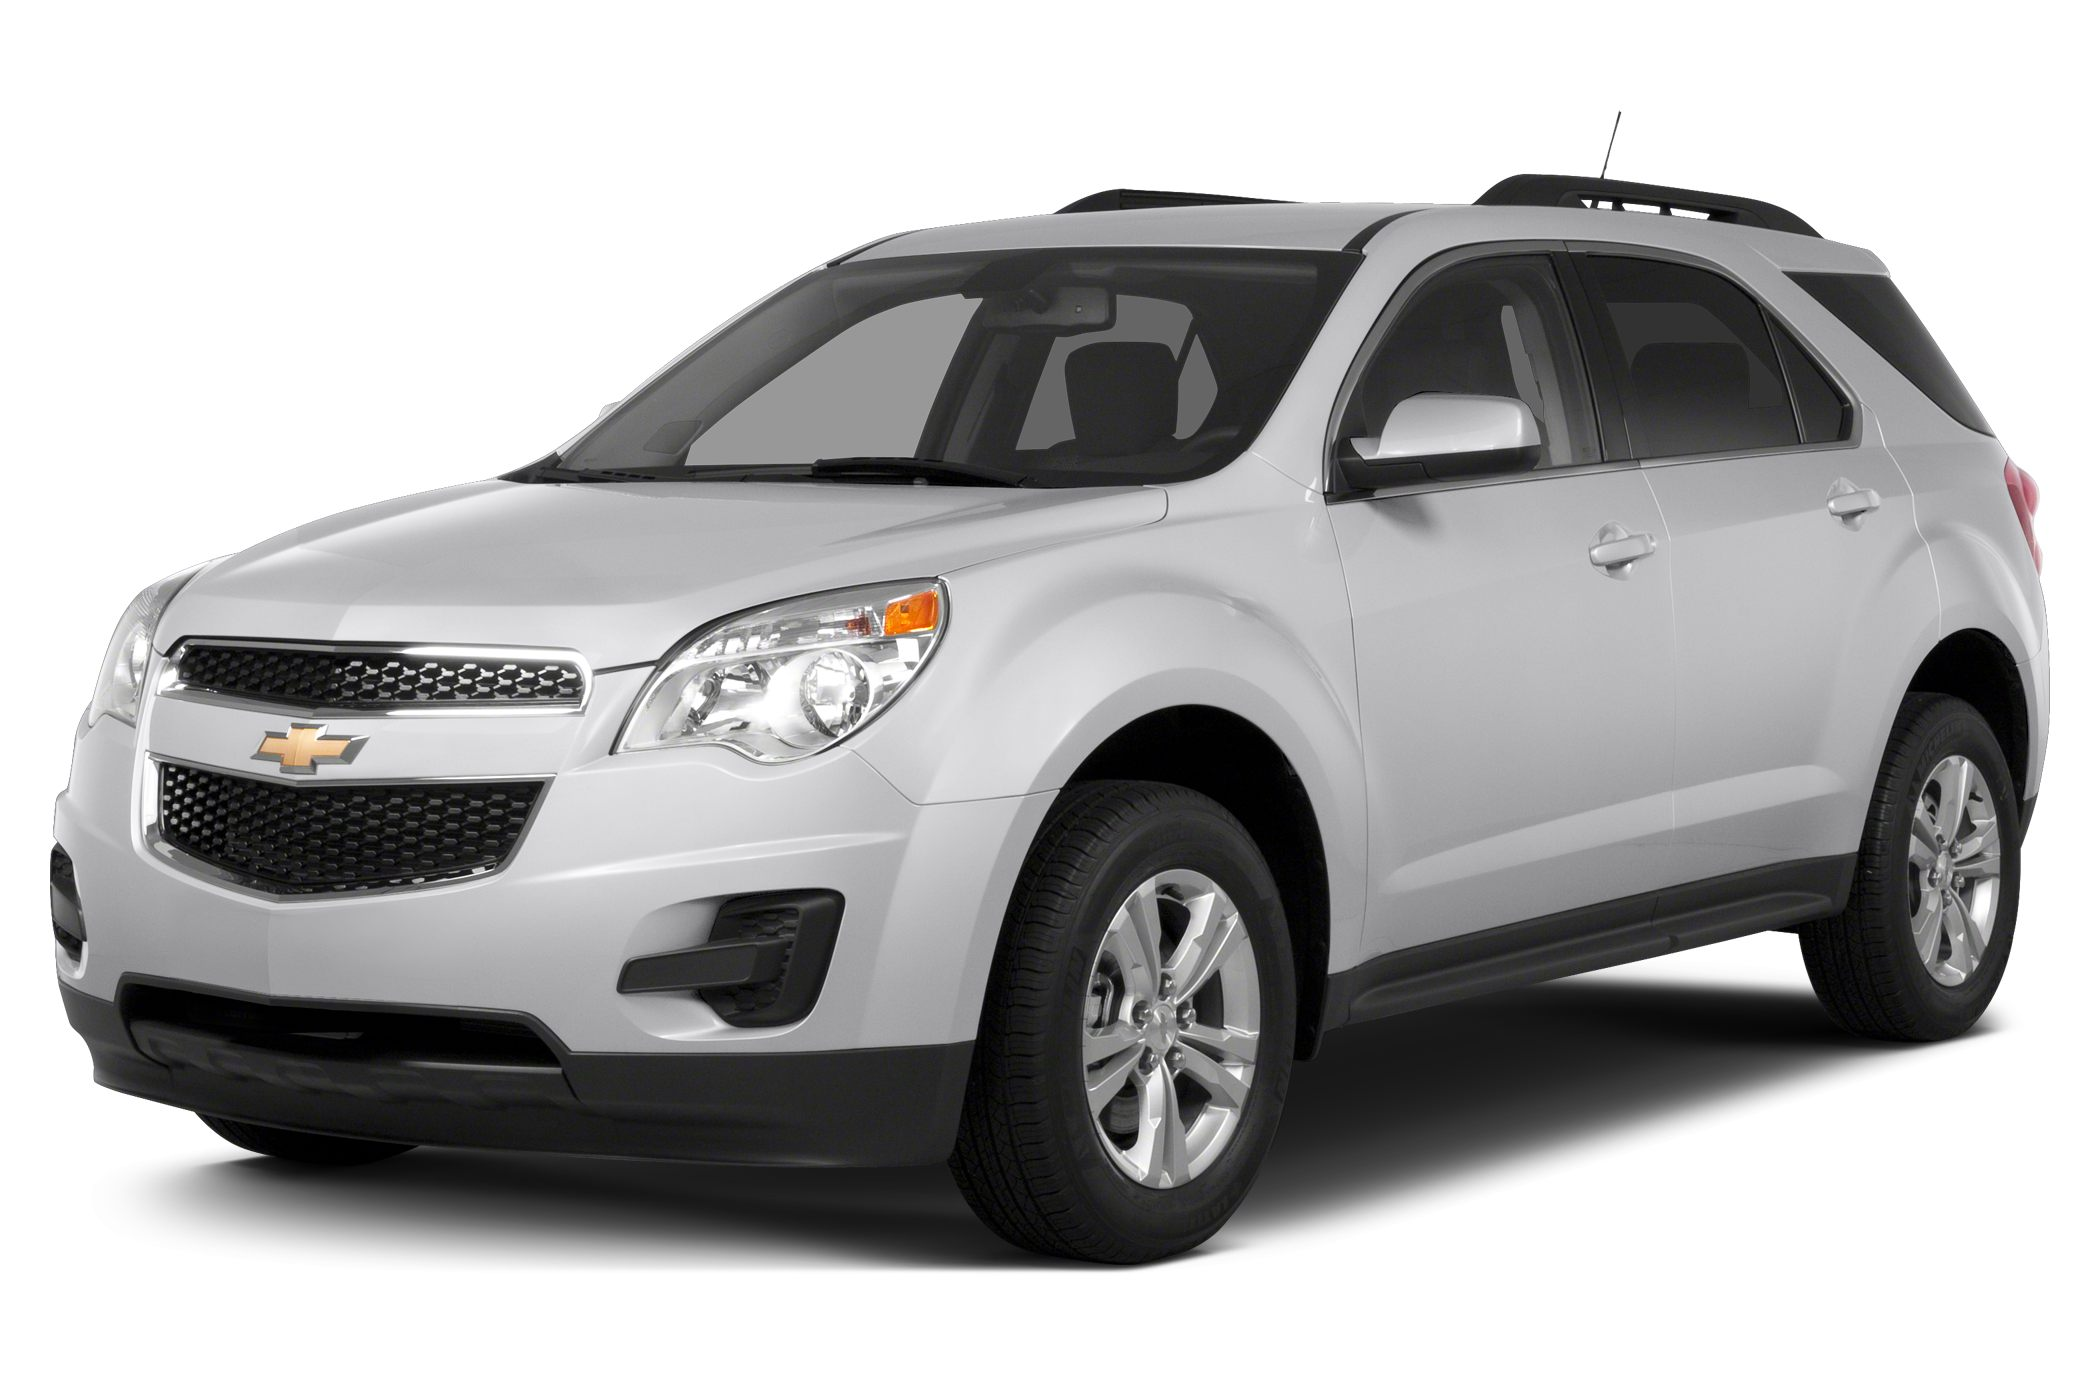 2013 Chevrolet Equinox 2LT SUV for sale in Casa Grande for $19,997 with 64,908 miles